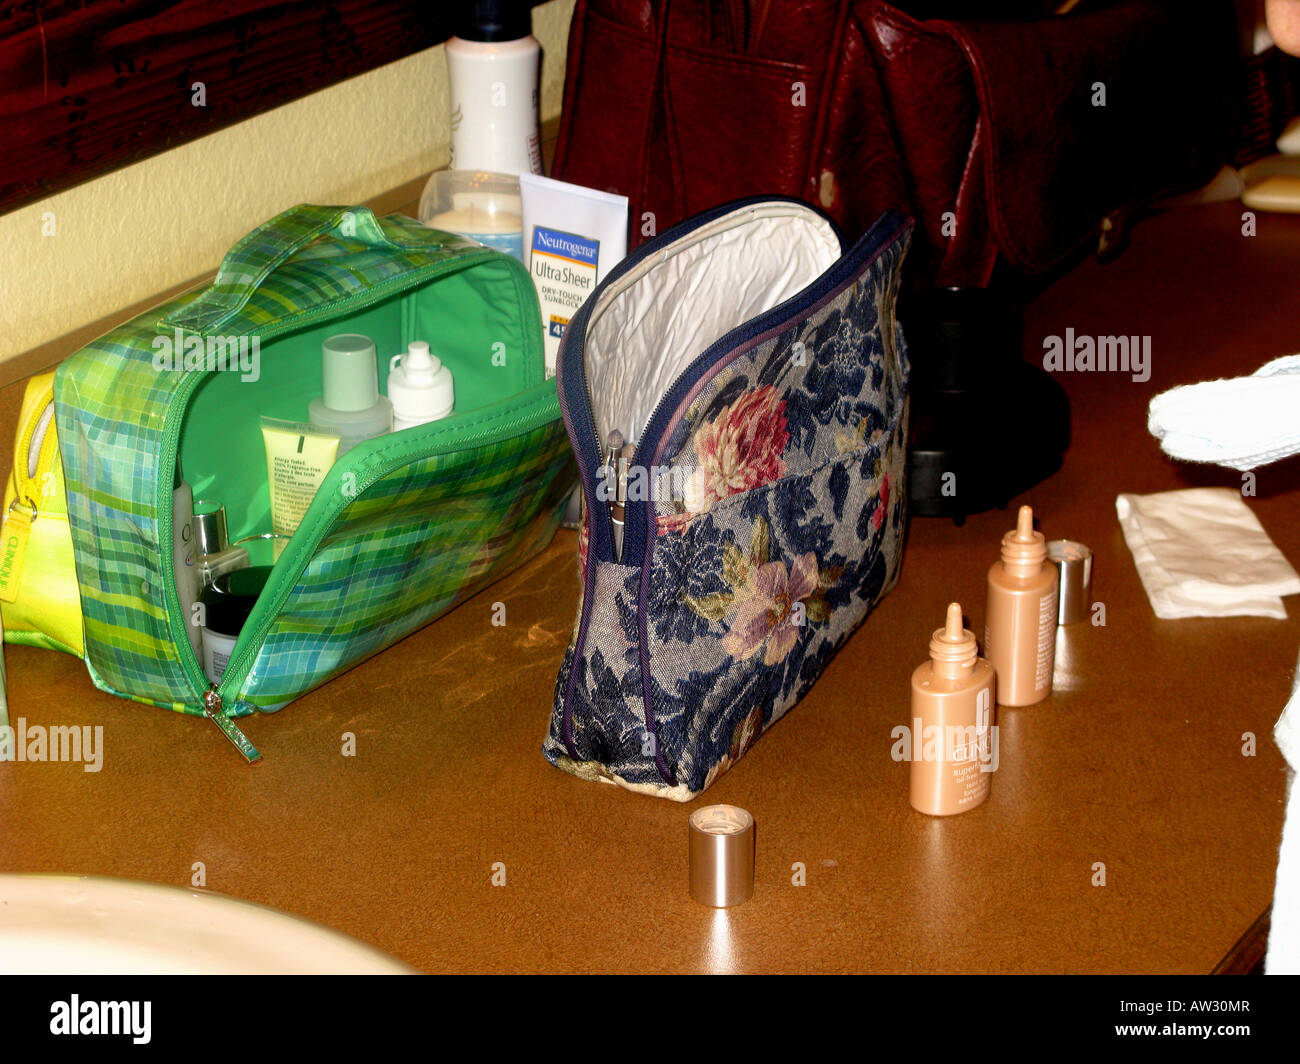 Travel bags full of cosmetics and toiletries. - Stock Image